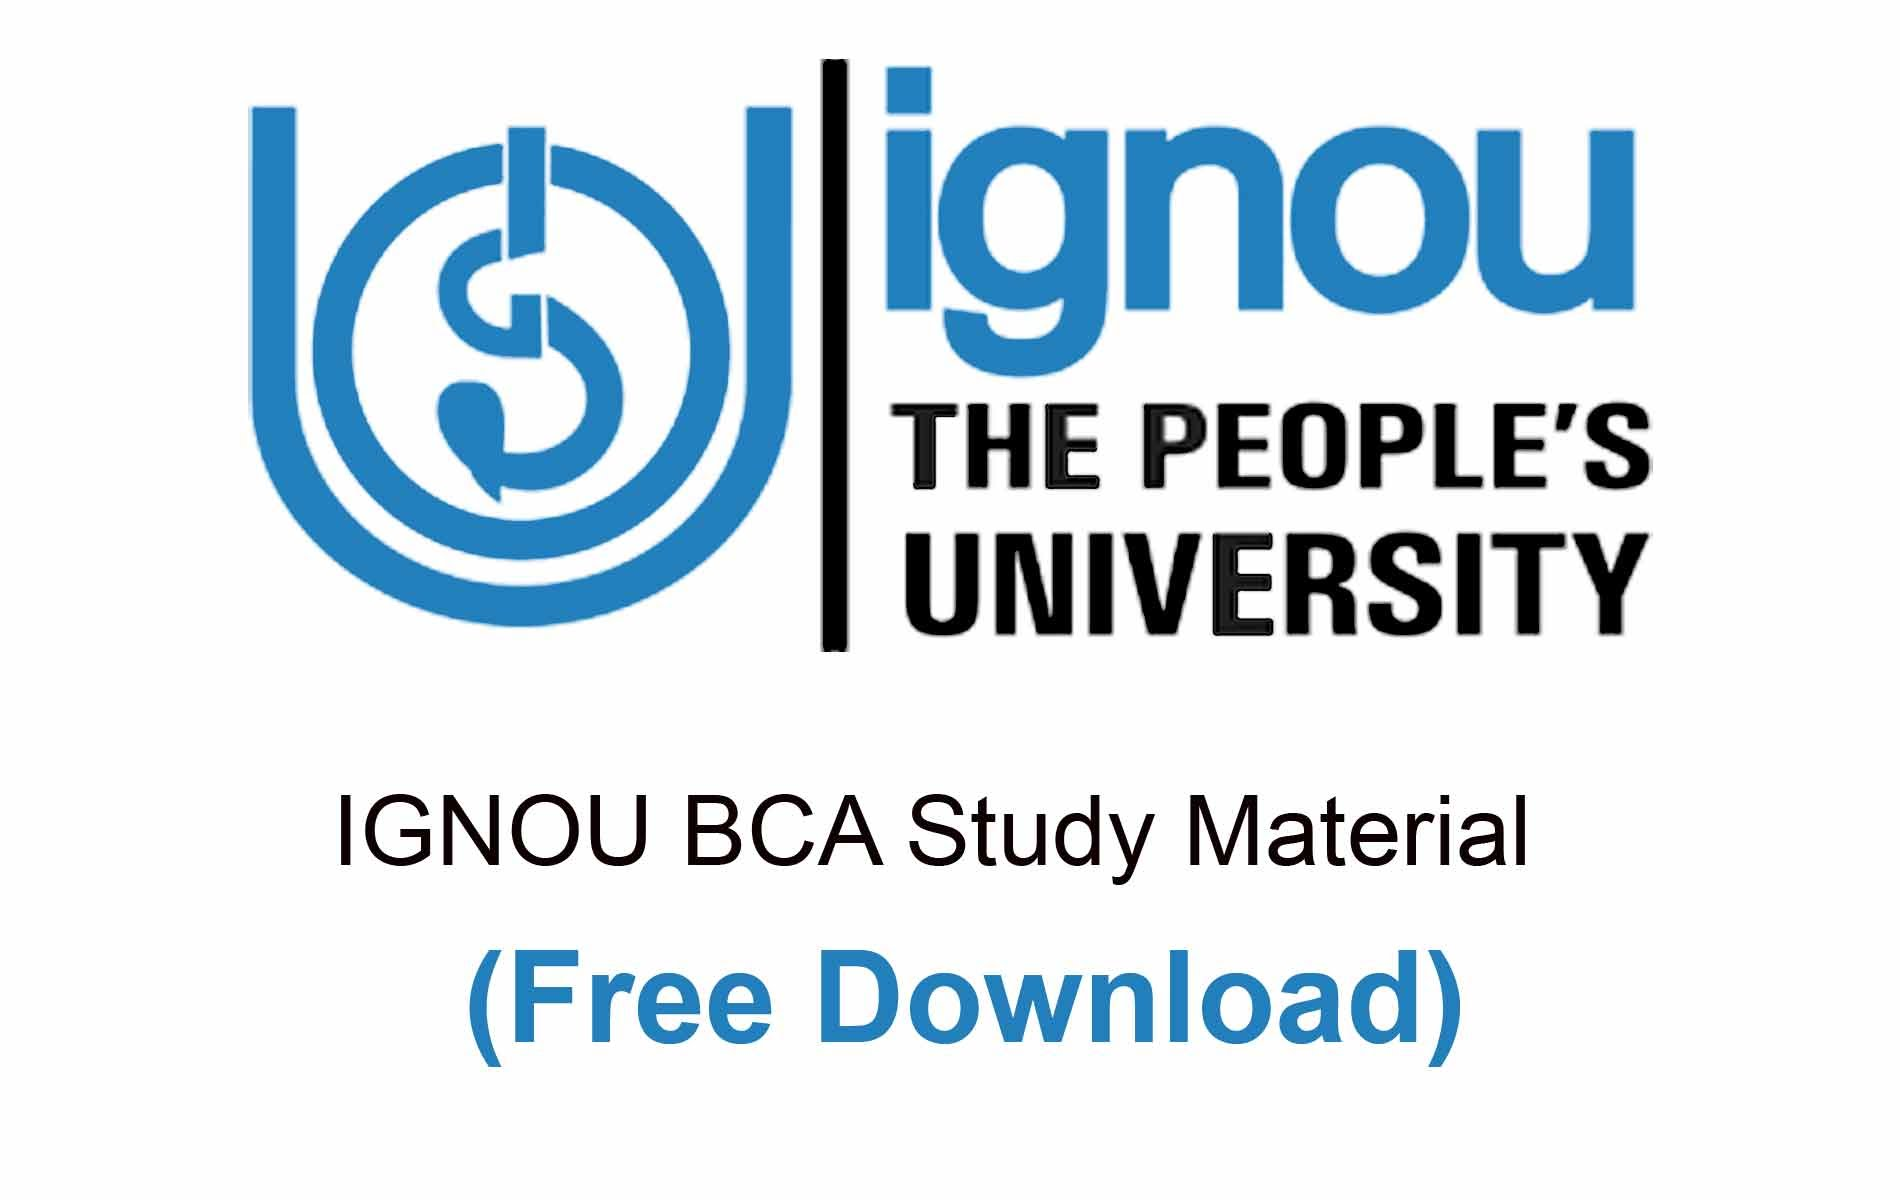 IGNOU BCA Study Material free download